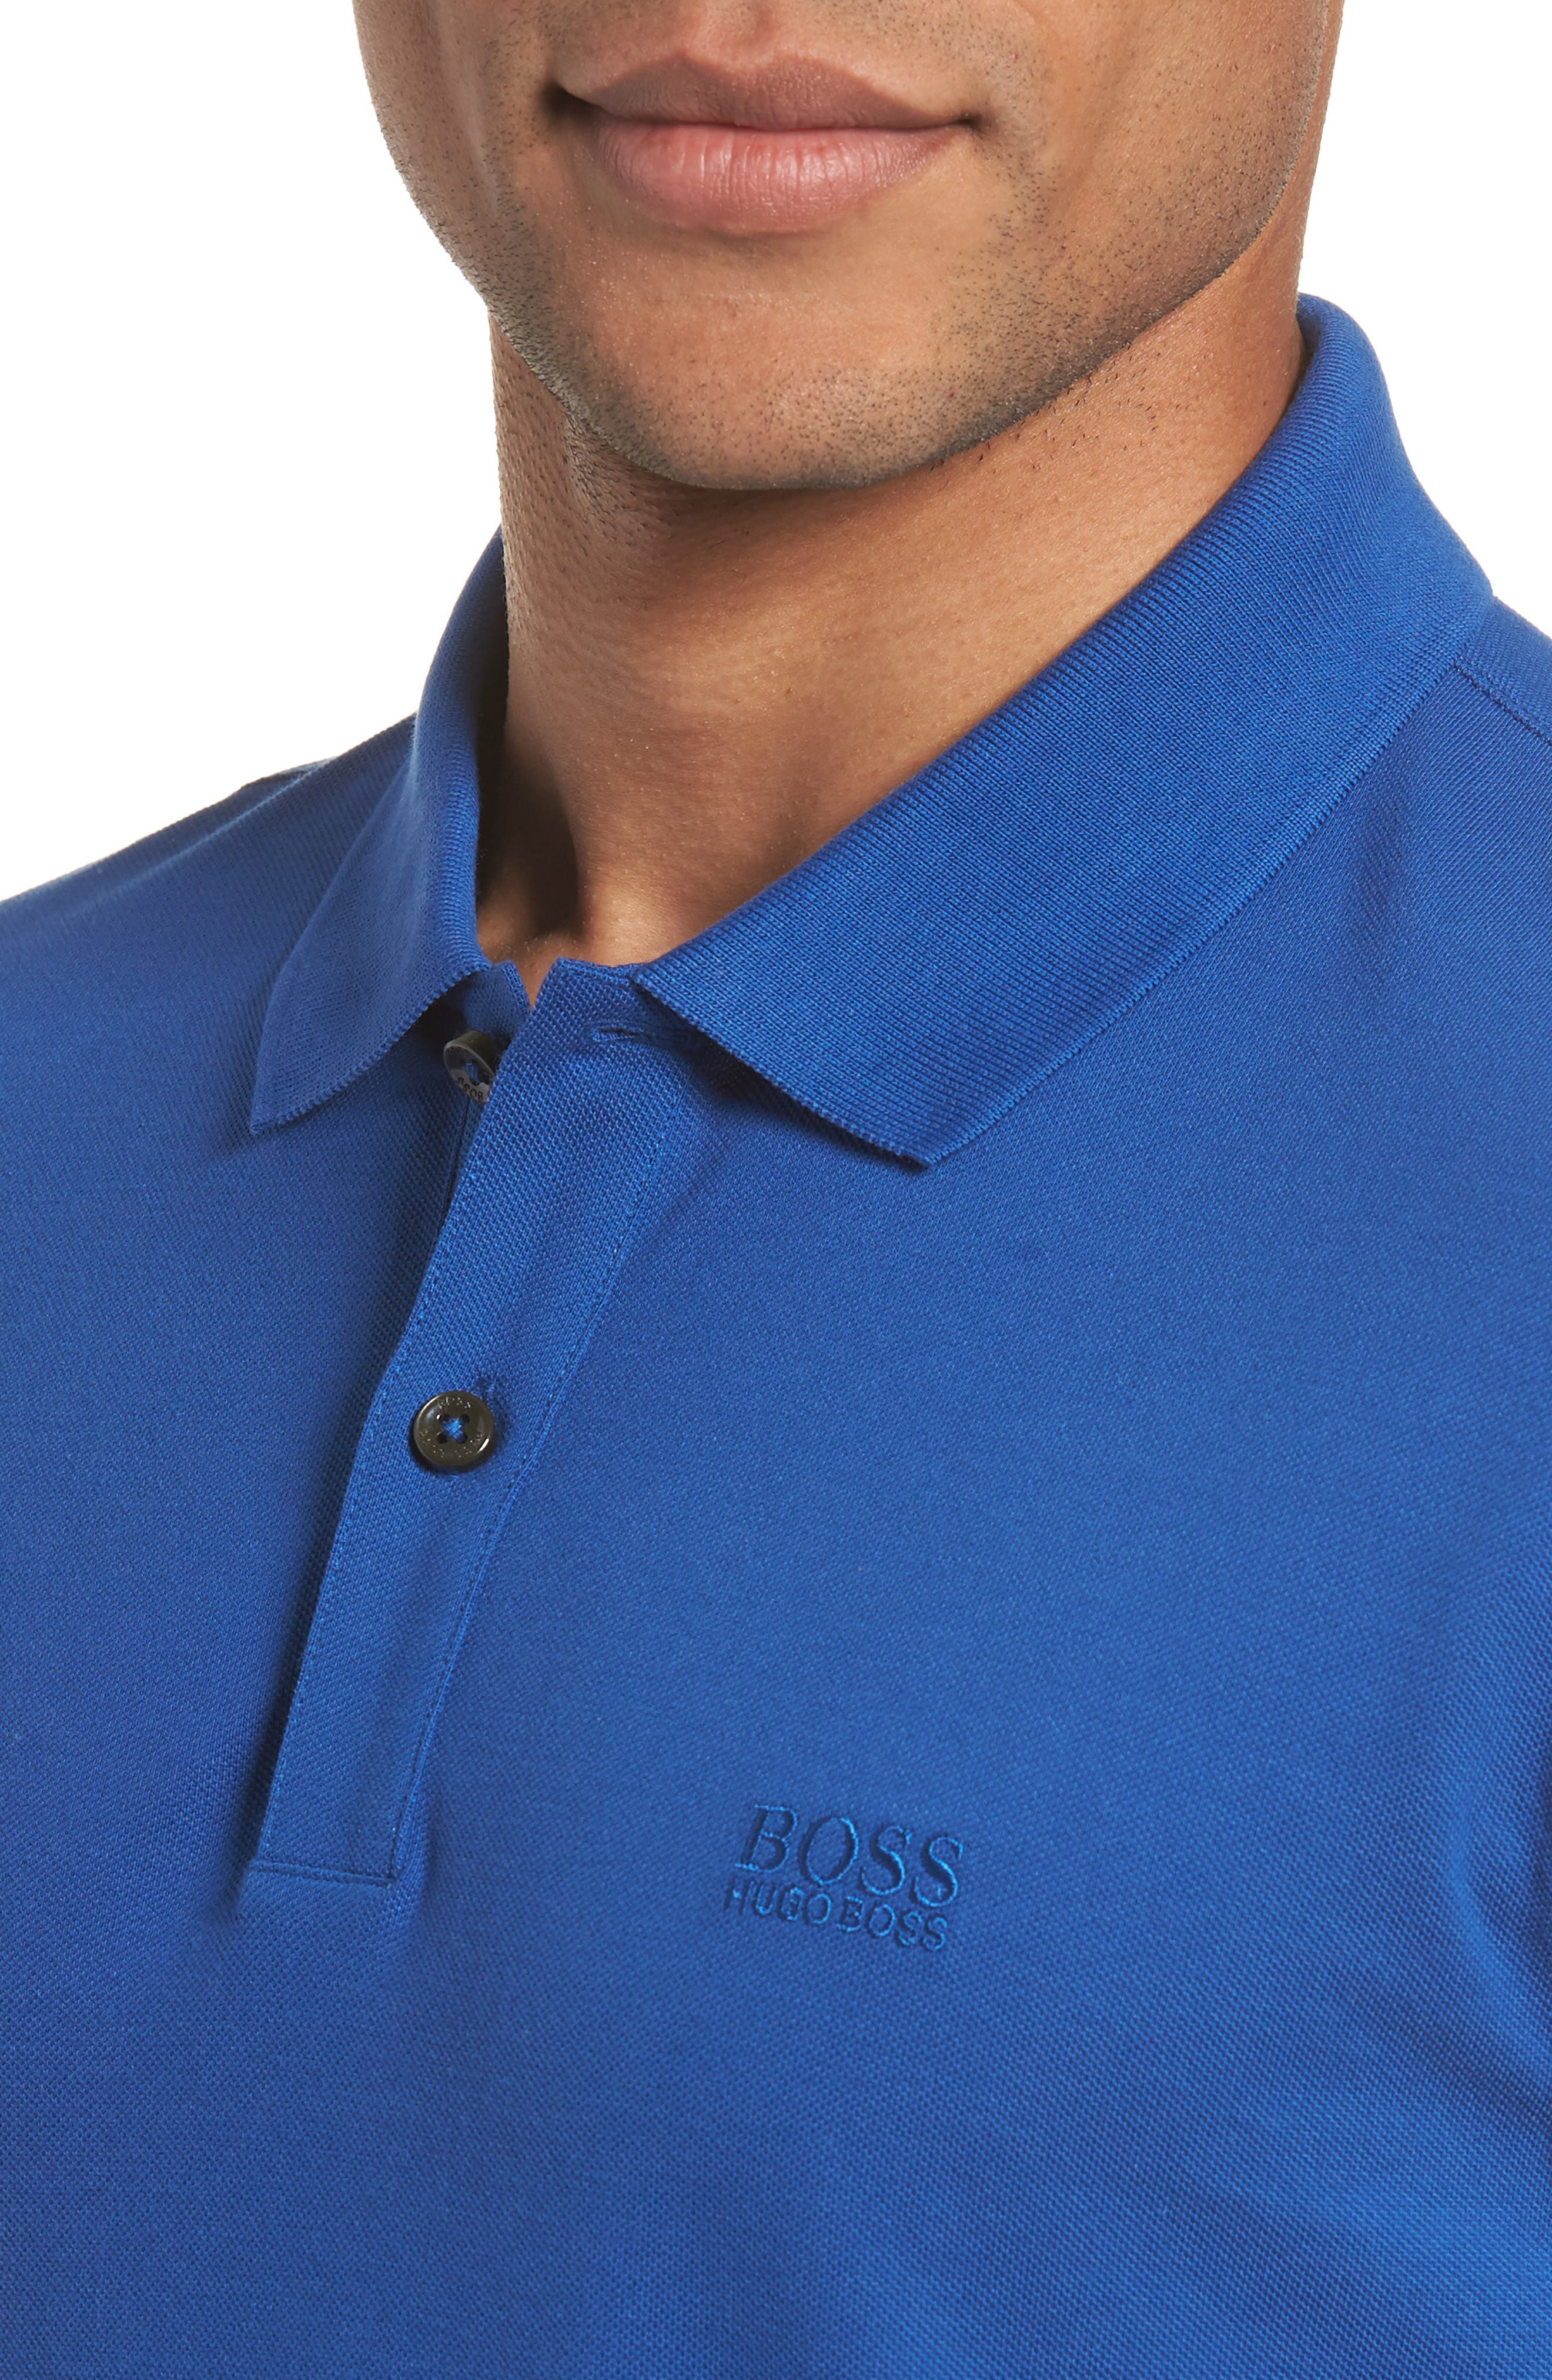 'Pallas' Regular Fit Logo Embroidered Polo Shirt,                             Alternate thumbnail 4, color,                             Open Blue